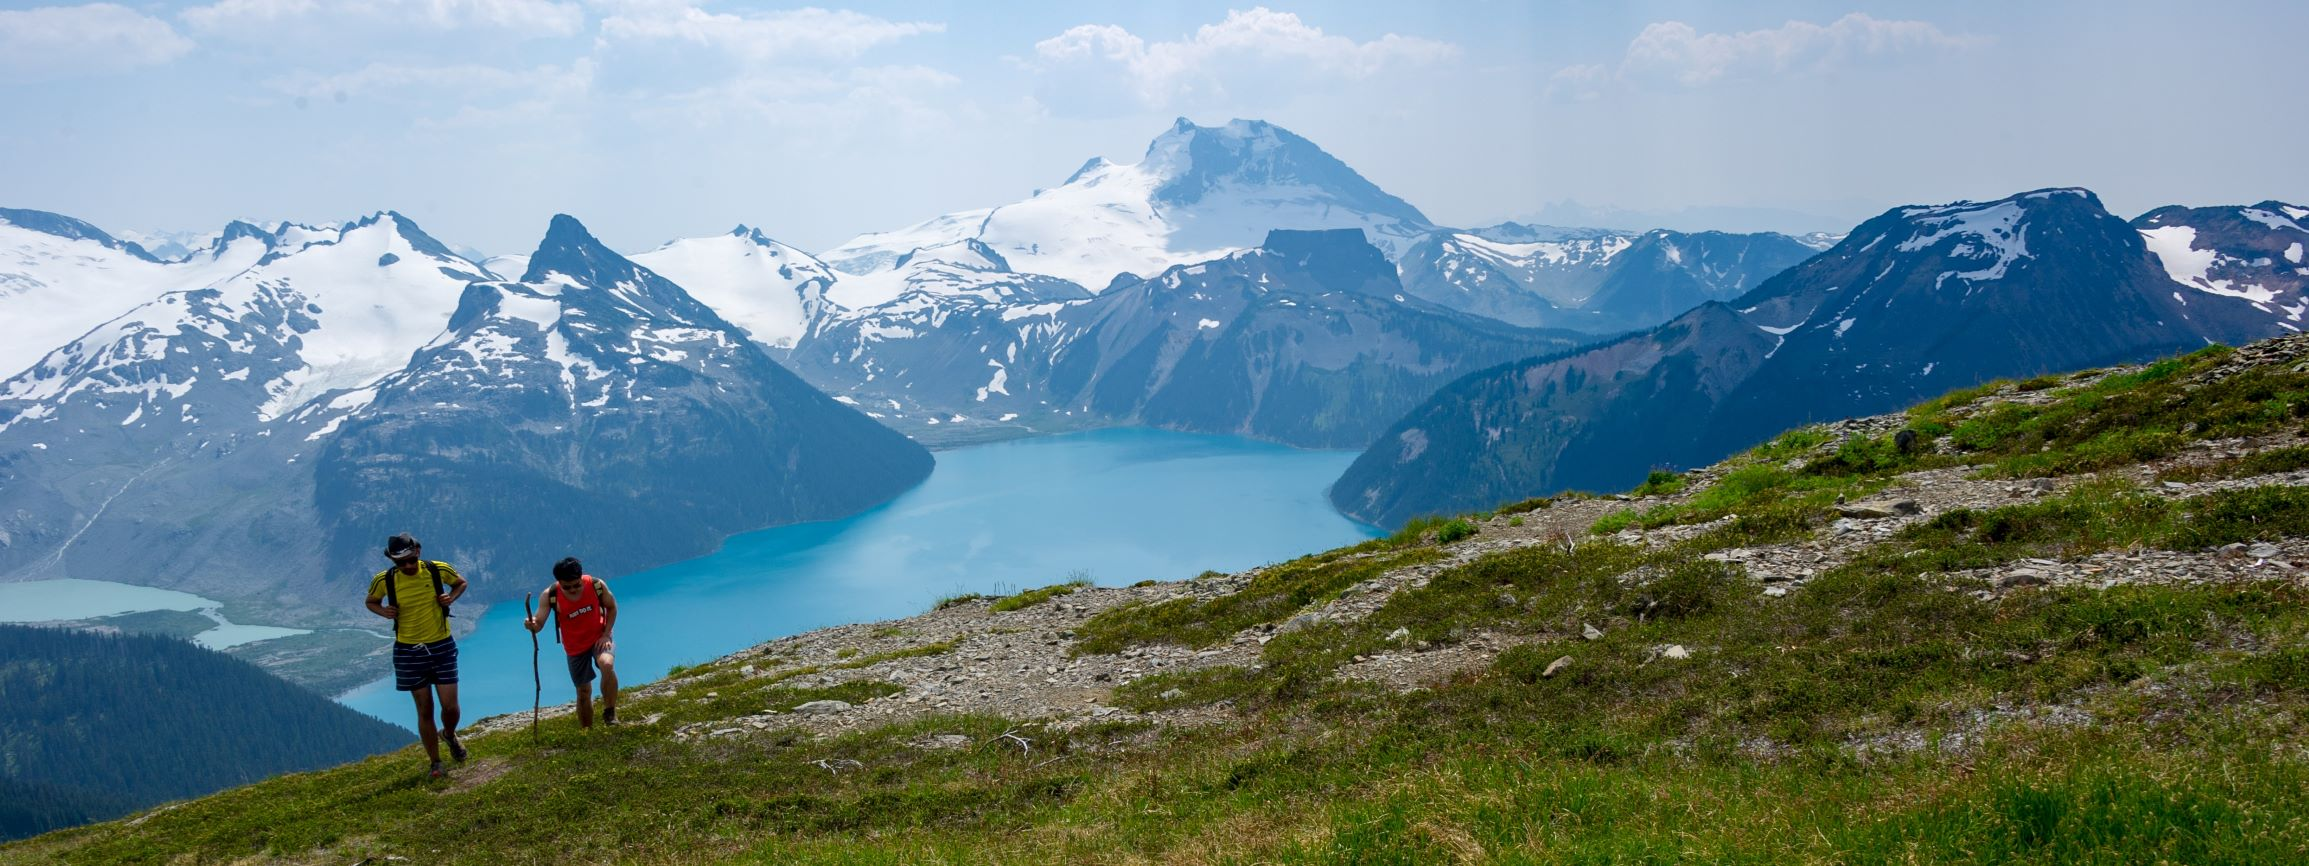 The Best Day Trips from Vancouver